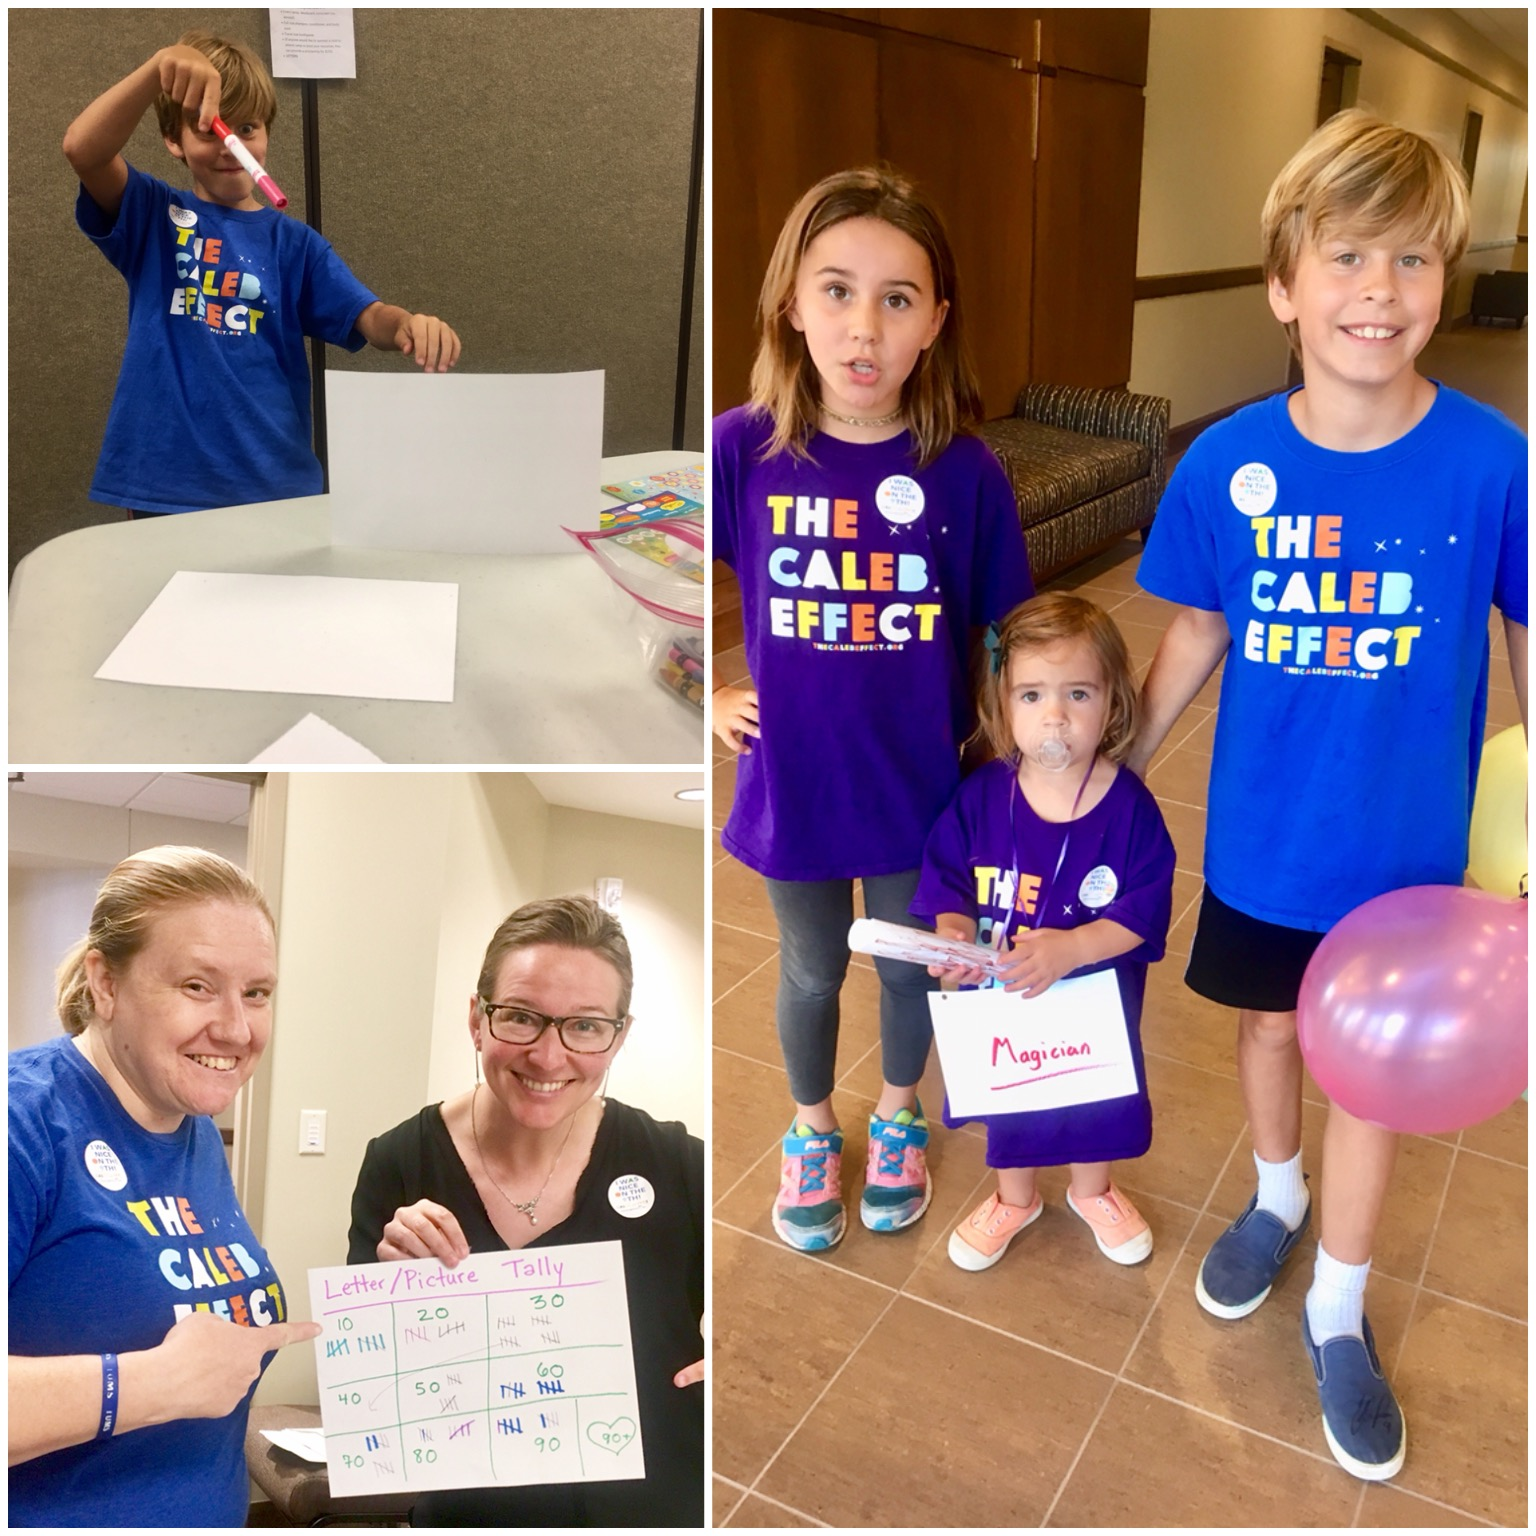 With the help of the littlest magicians, our goal of at least 91 pictures and letters to honor each year of Grandma's life was met!! — with  Kara Walk , Harry Hophead ,  Candace Fish ,  Thomas Lundy  and  Christine Burk .